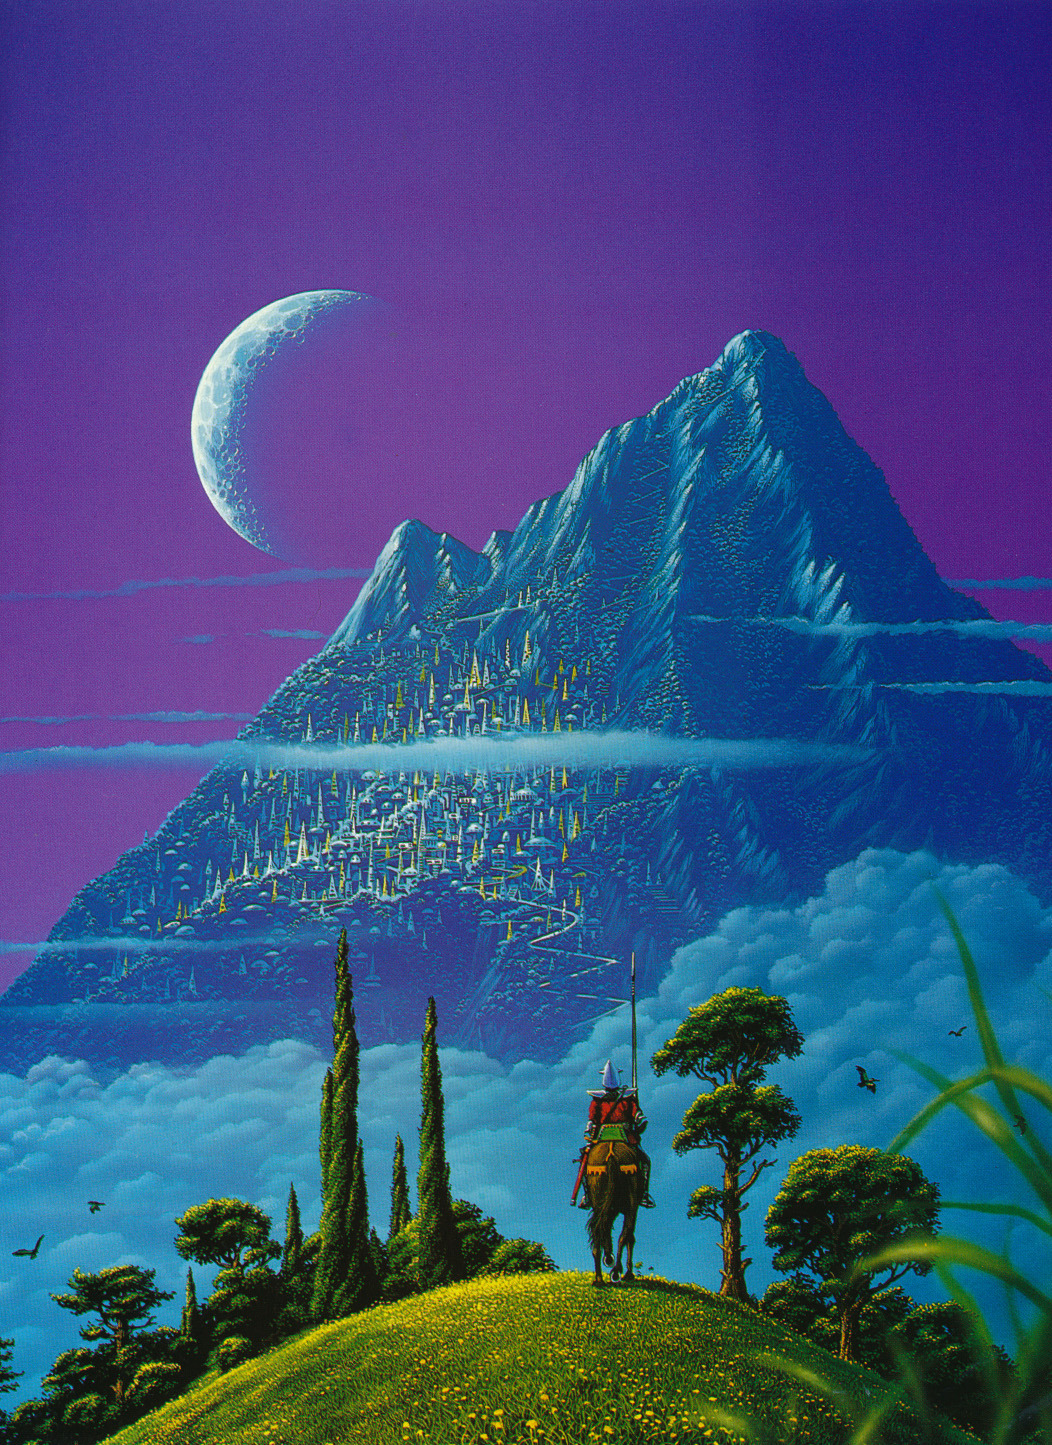 Tim White 1985 art for Nine Princes In Amber by Roger Zelazny